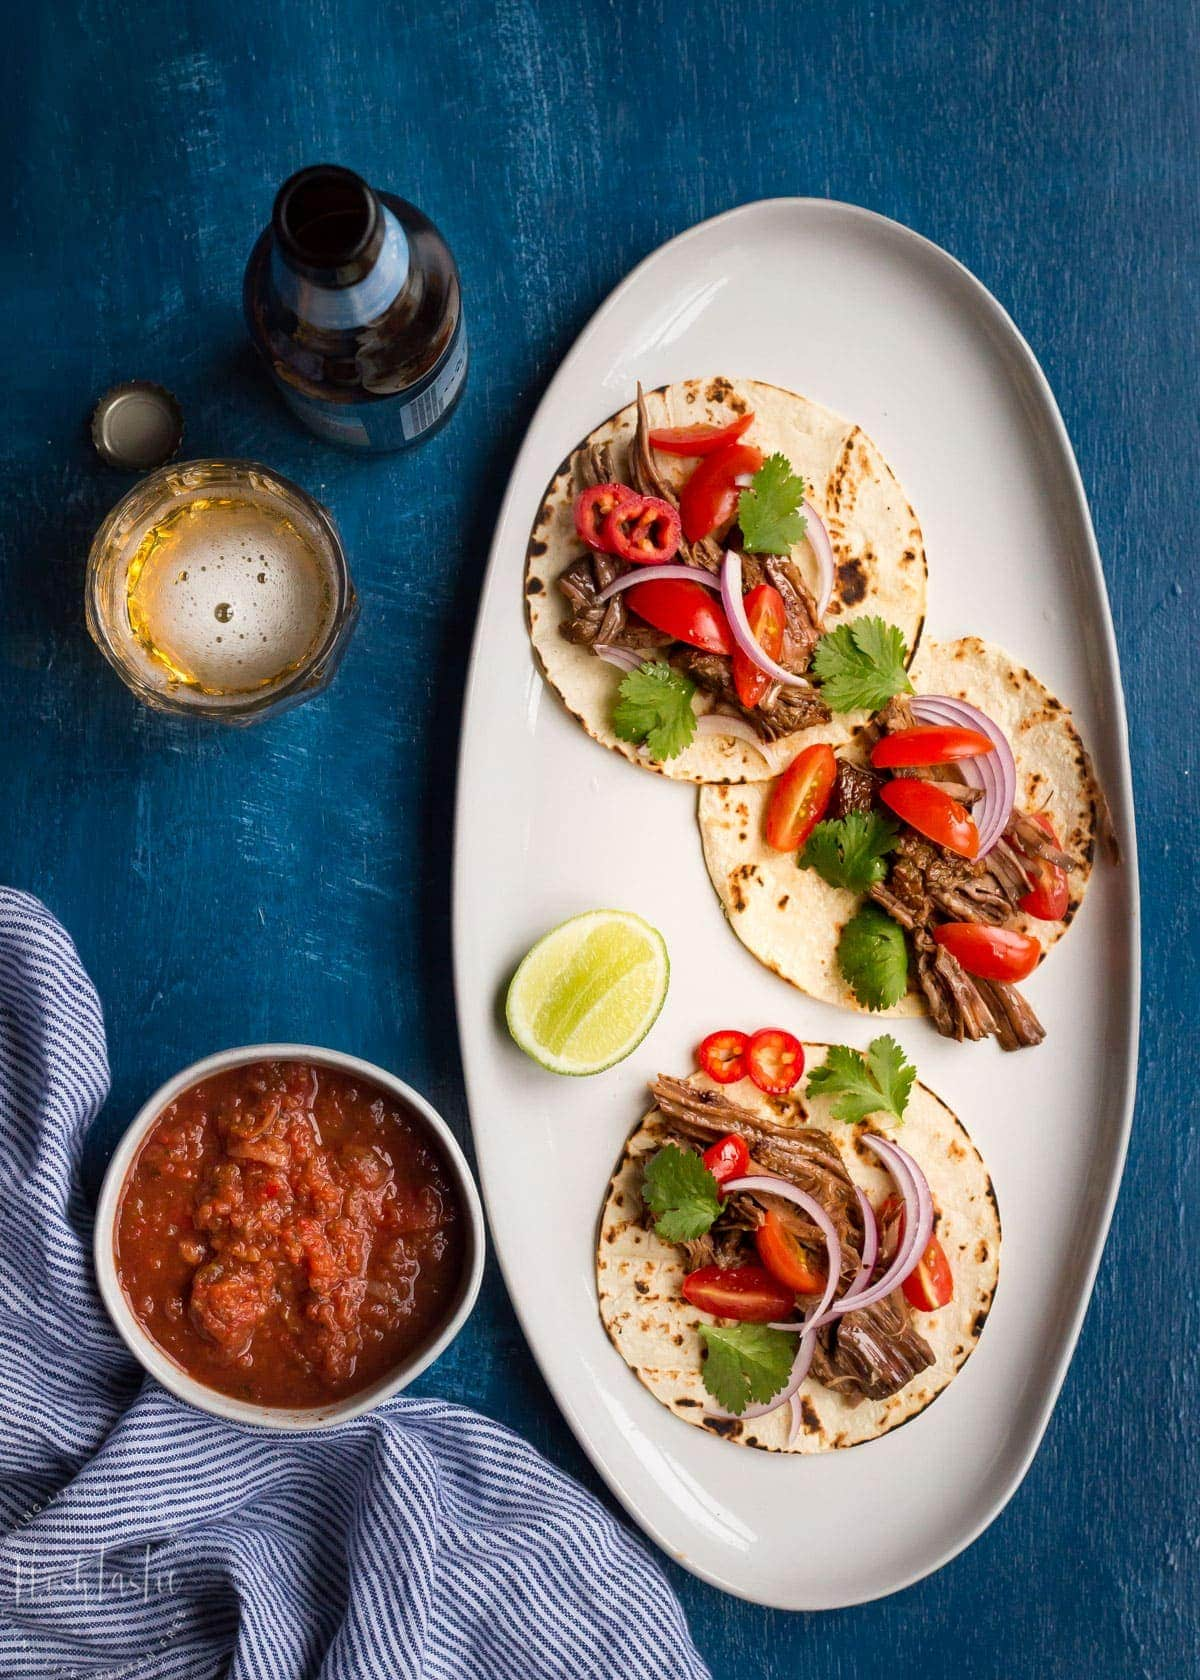 Salsa, cider and three beef tacos on a plate